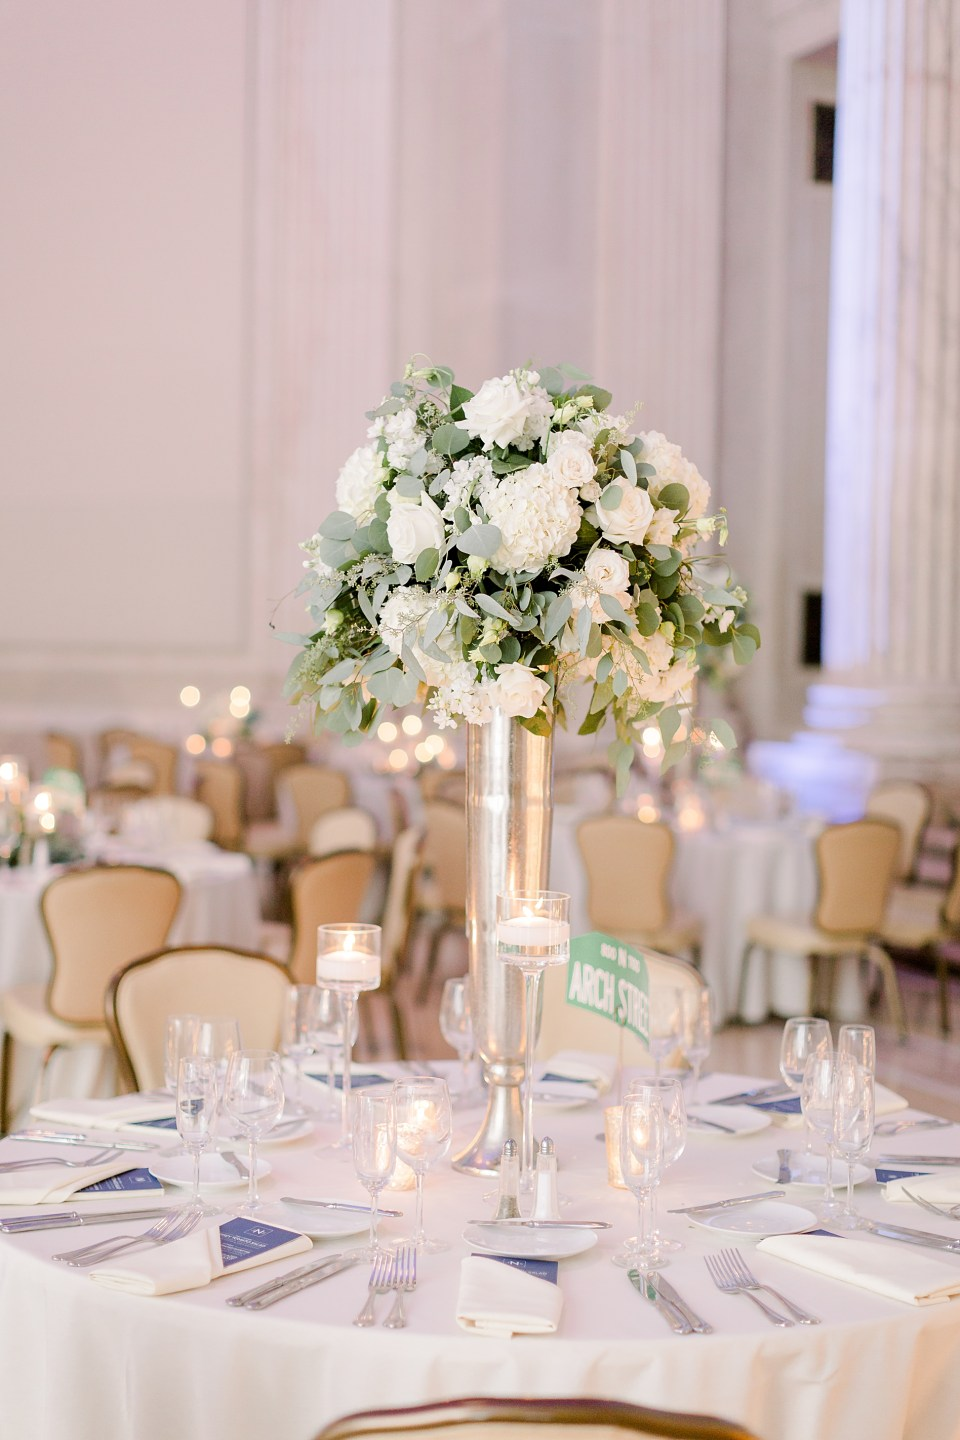 centerpieces by robertson's